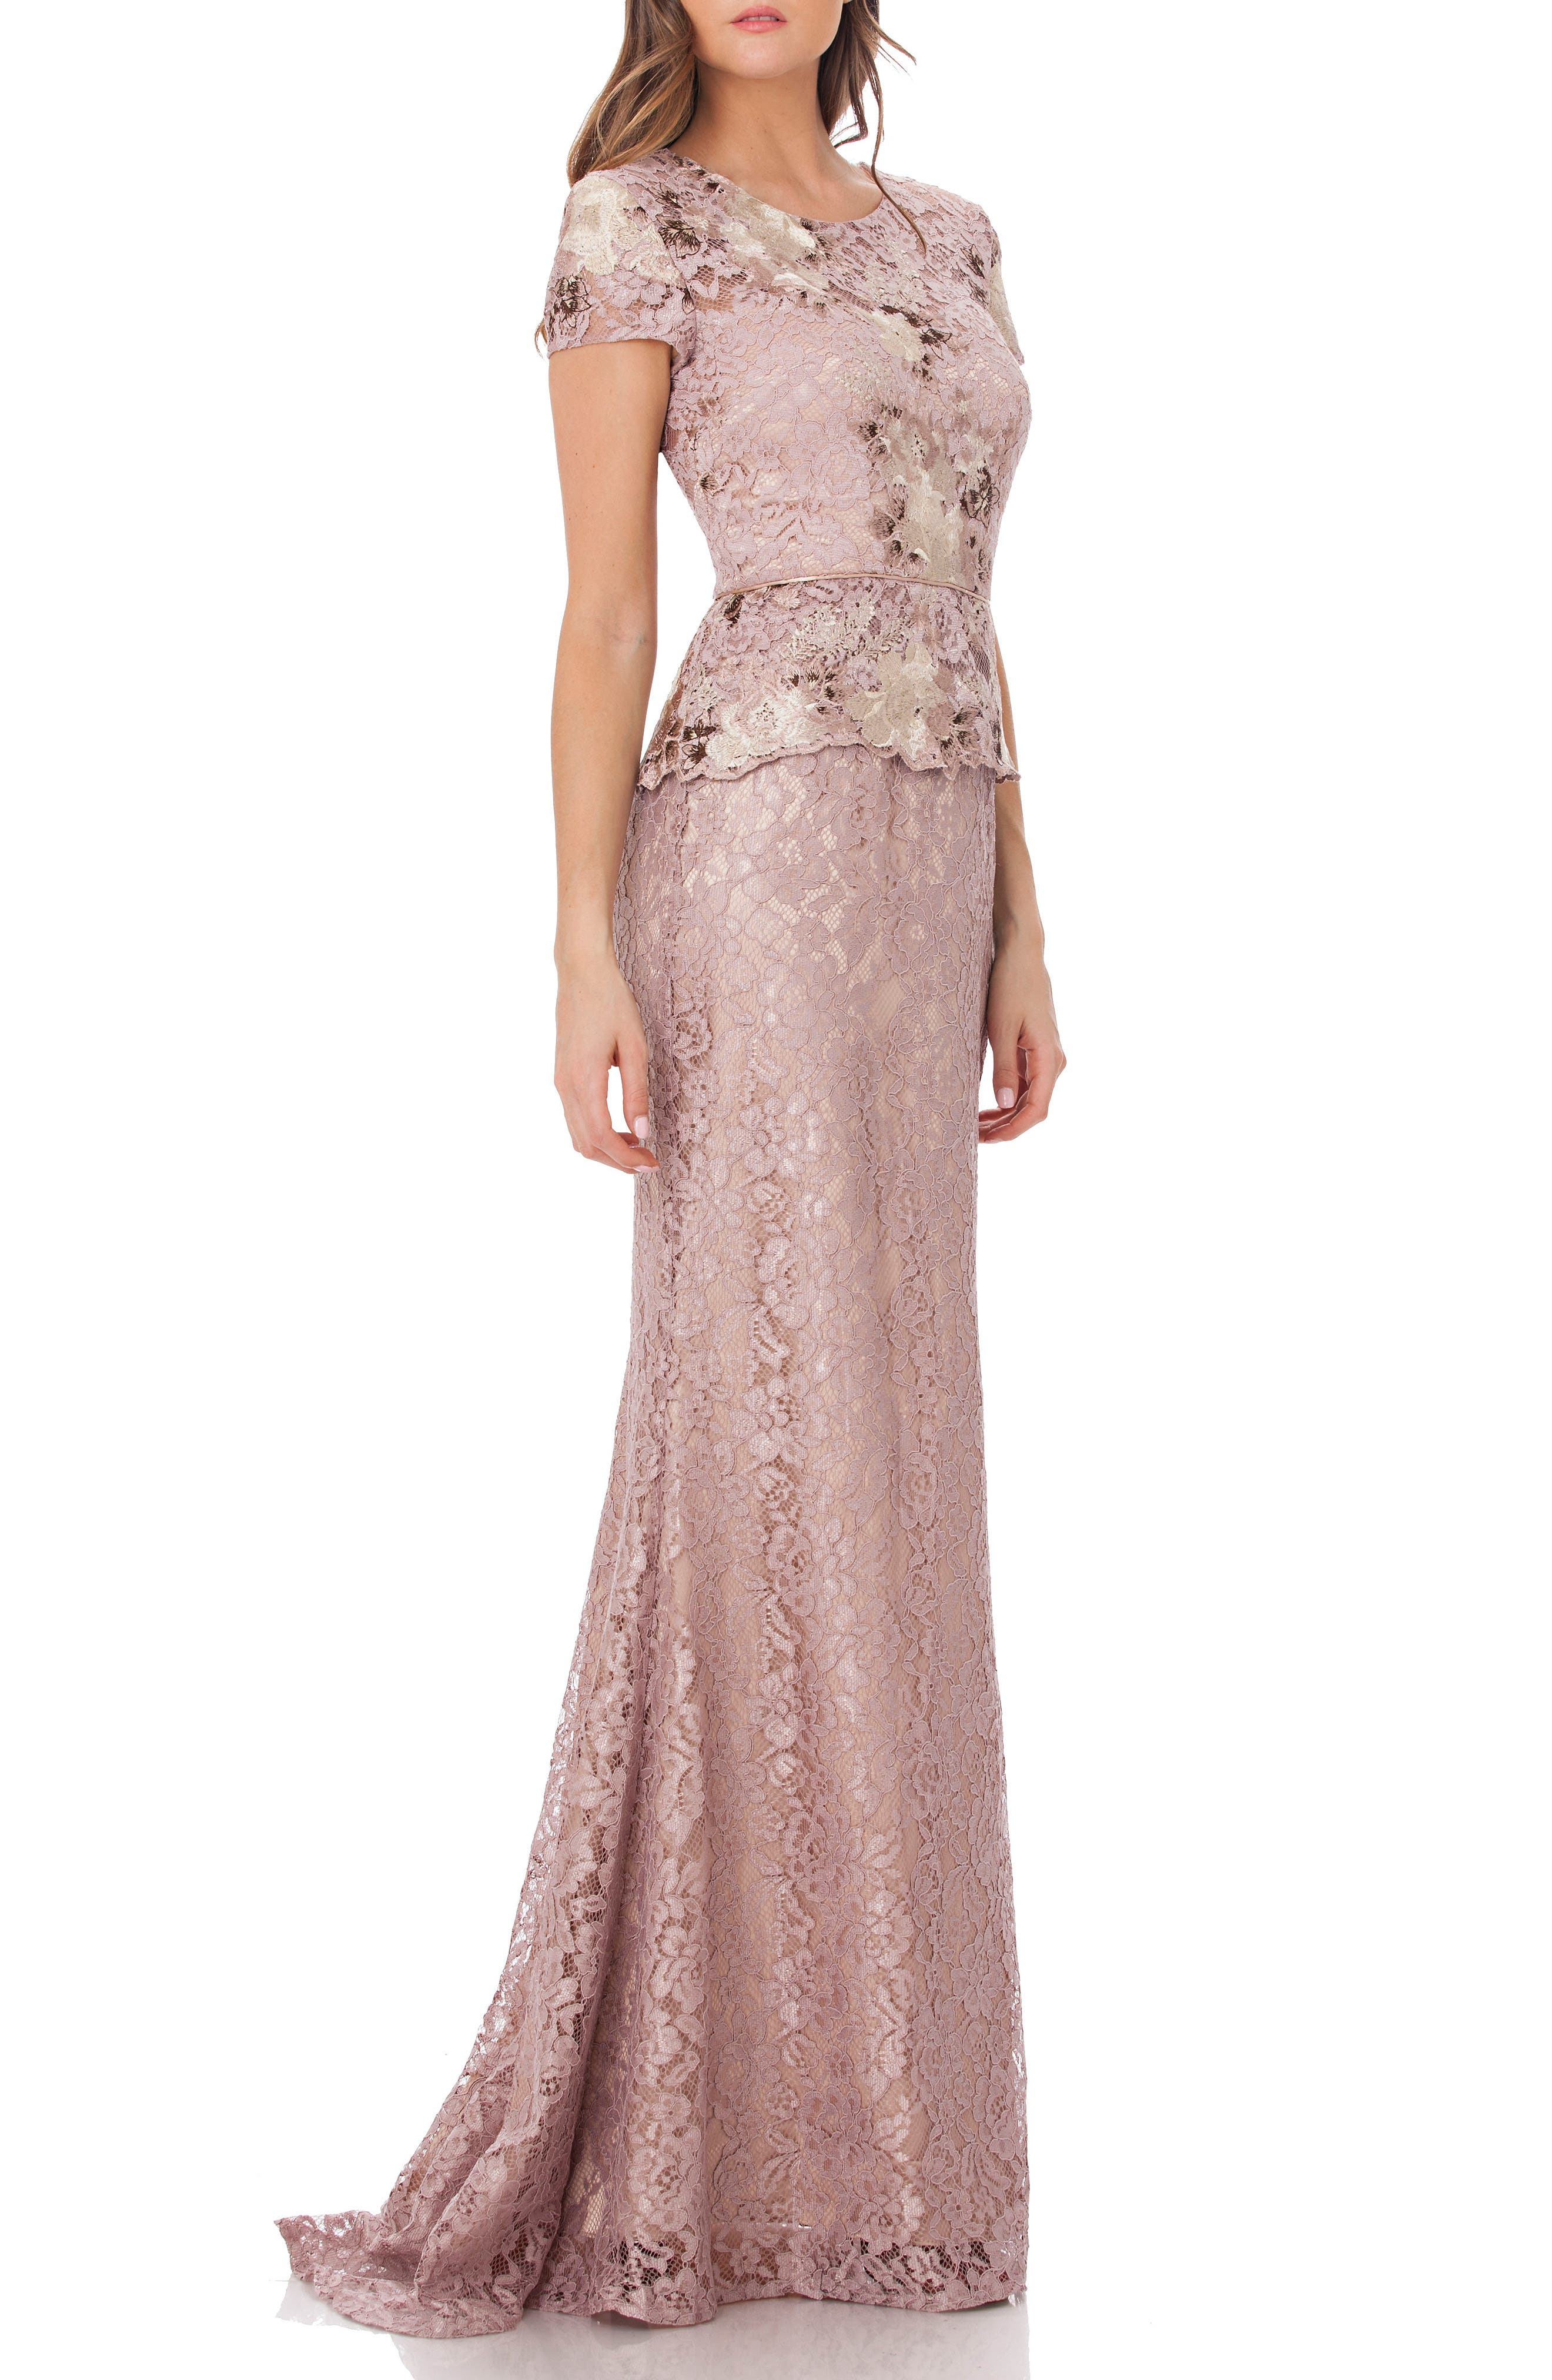 JS COLLECTIONS, Lace Gown, Main thumbnail 1, color, LAVENDER/ BLUSH